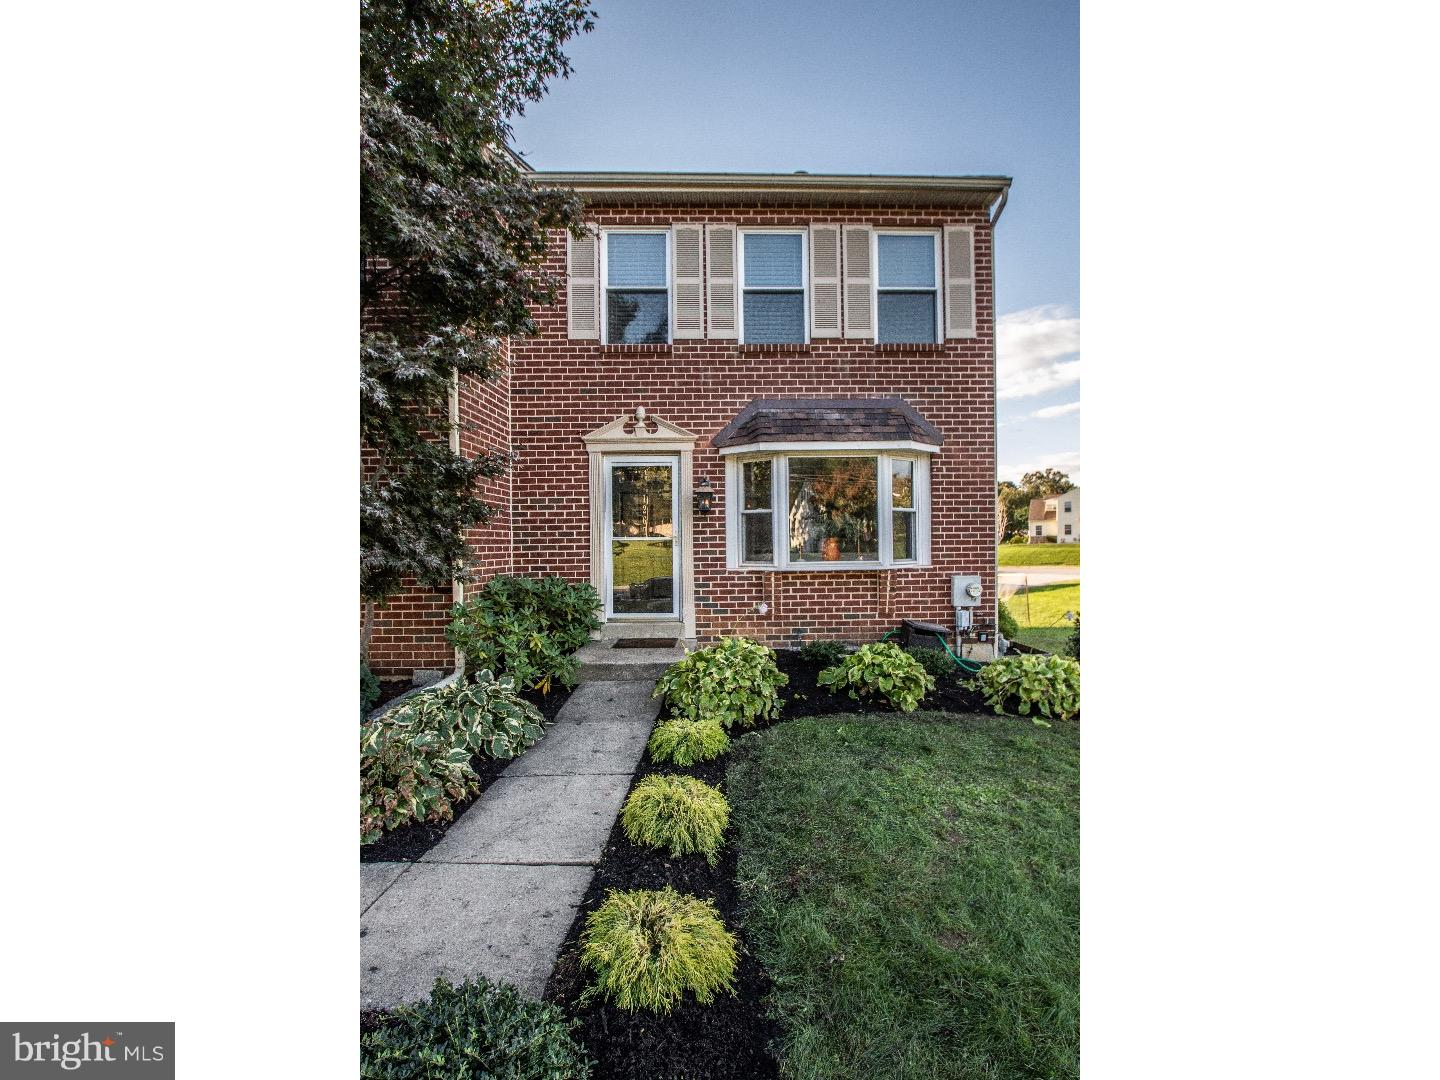 1267 Morstein Road West Chester, PA 19380